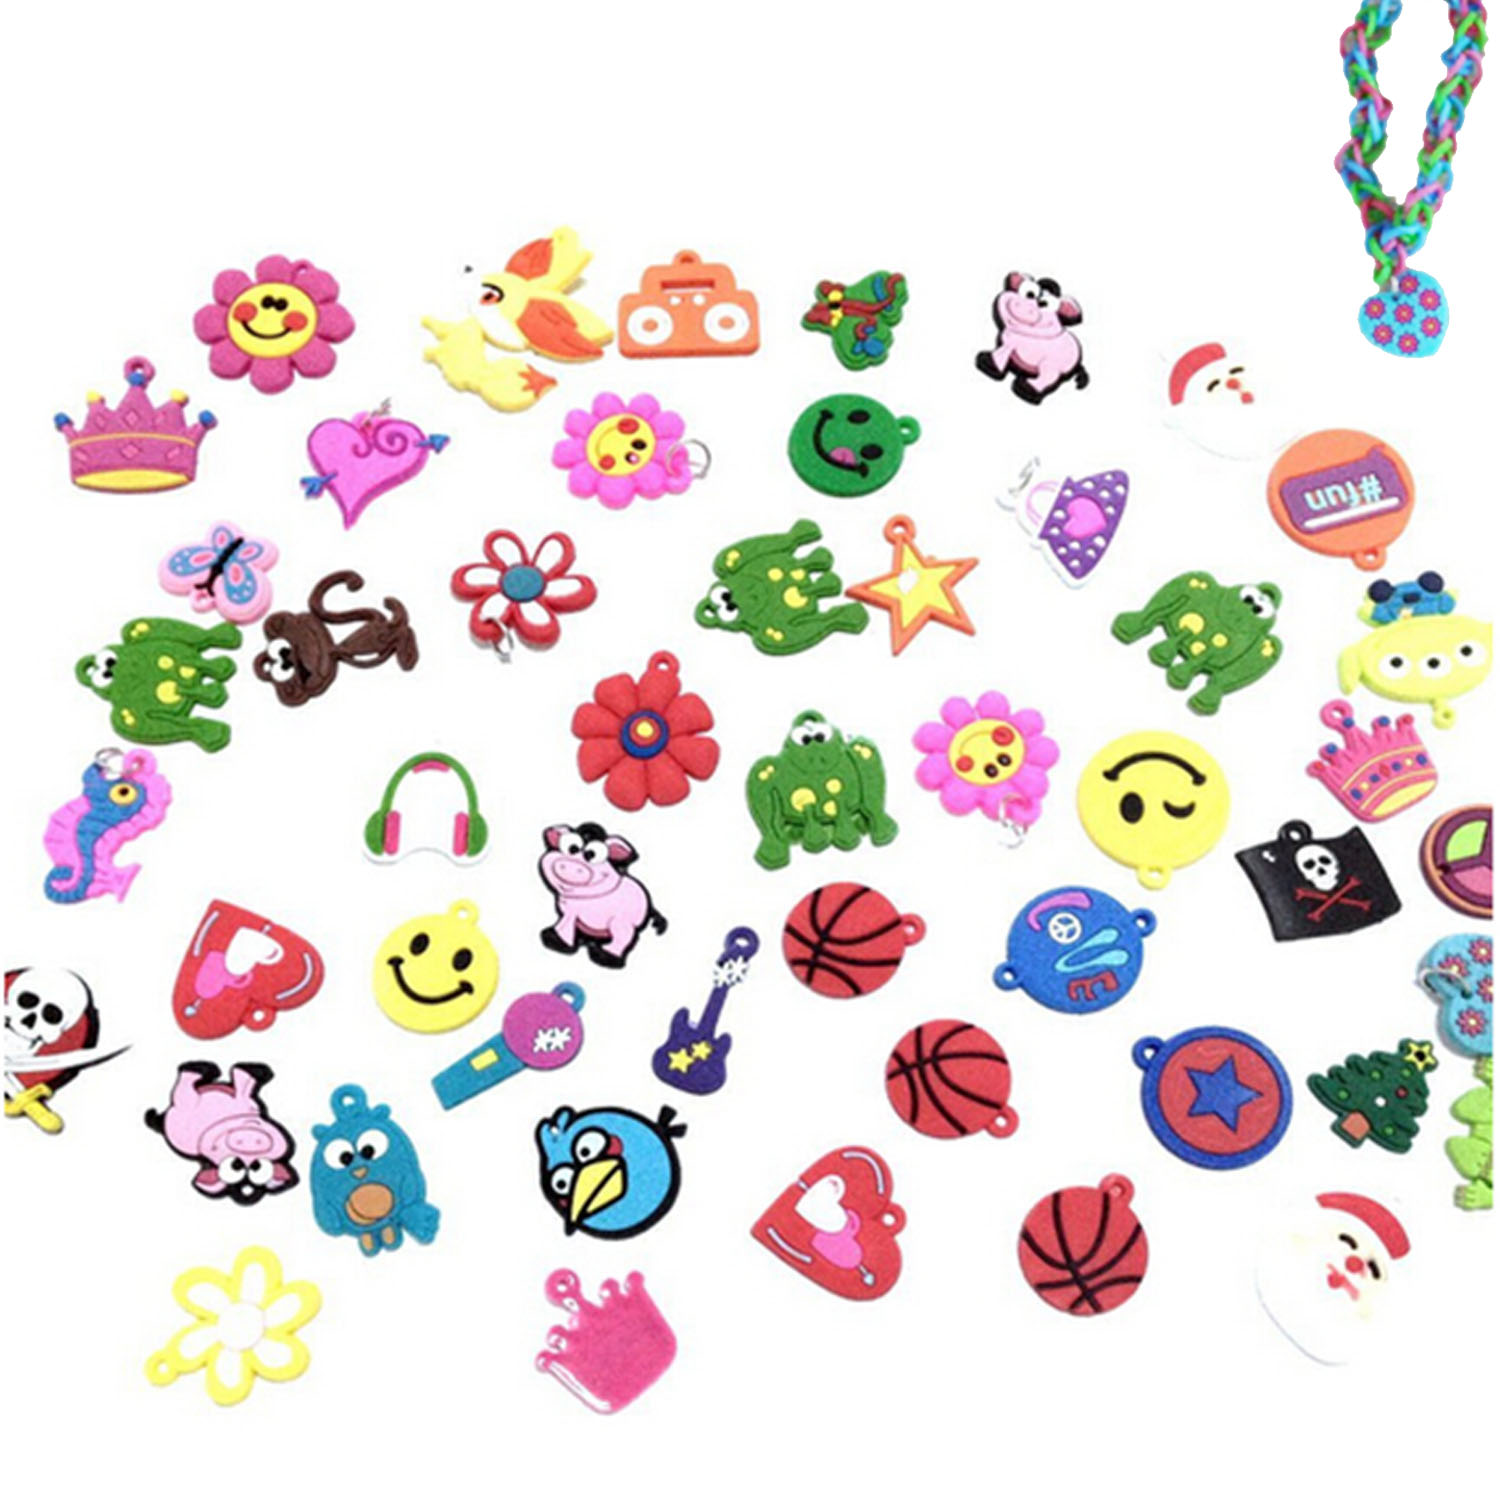 30Pcs Cute Funny Mini Cut Charms Pendants Toys Gifts Fashion DIY Colorful Loom Rubber Bands Bracelets Making Kit Random Style